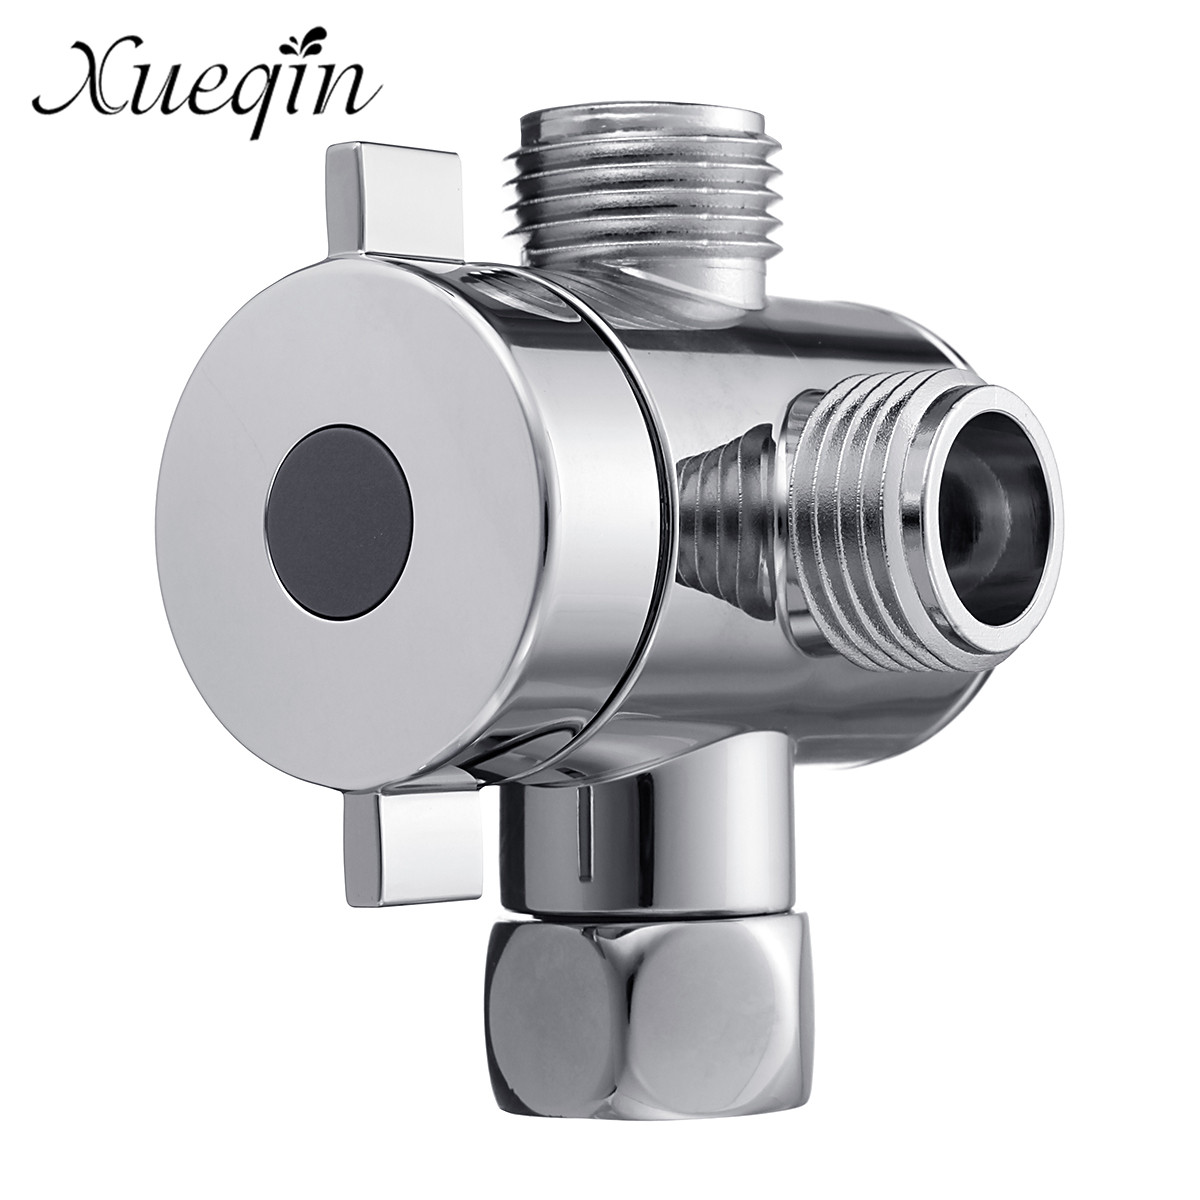 Three head function switch adapter control valve way tee